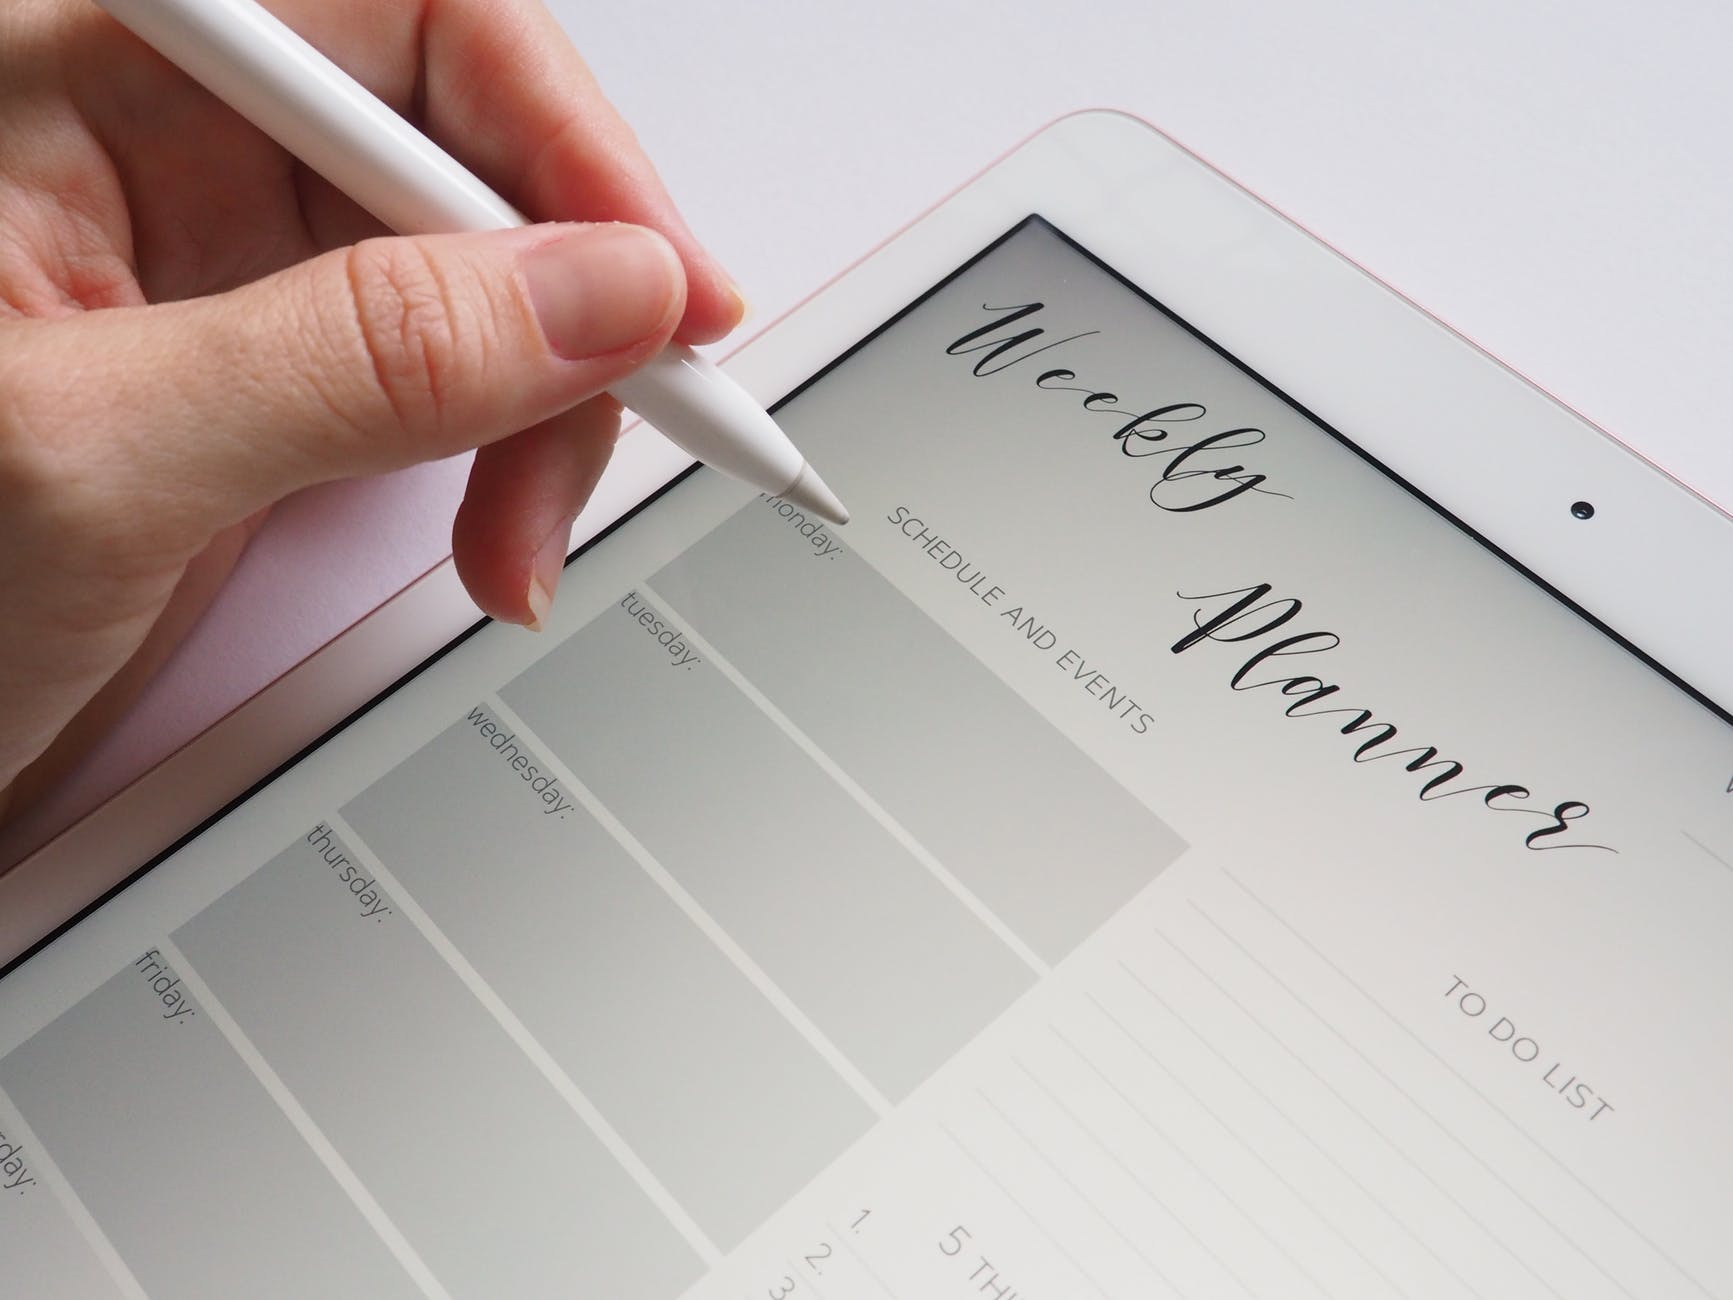 time saving tips for students - weekly planner iPad app